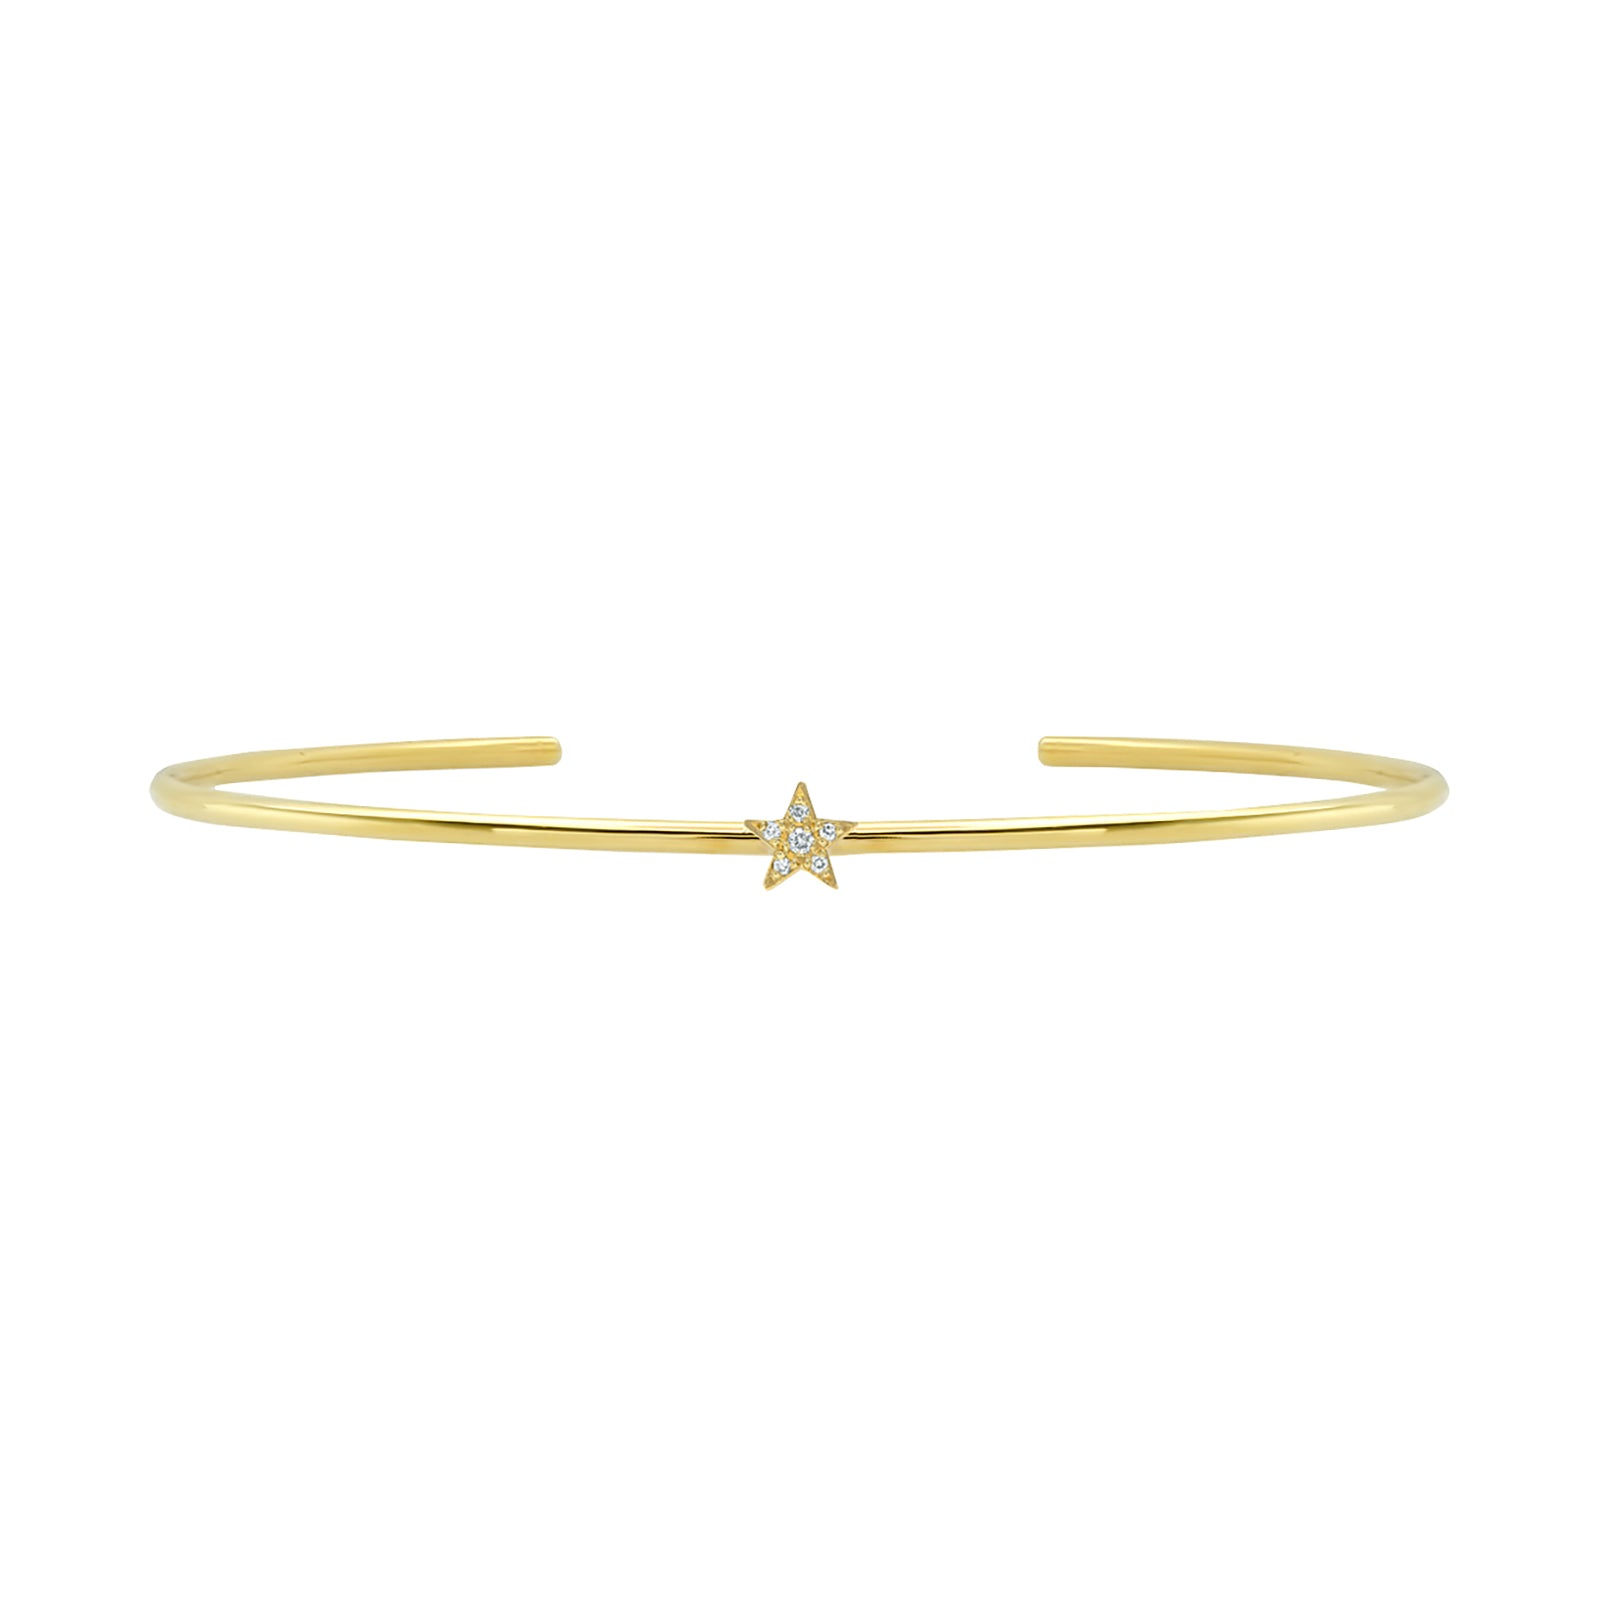 Jennifer Meyer Mini Star Cuff - White Diamond - Bracelets - Broken English Jewelry